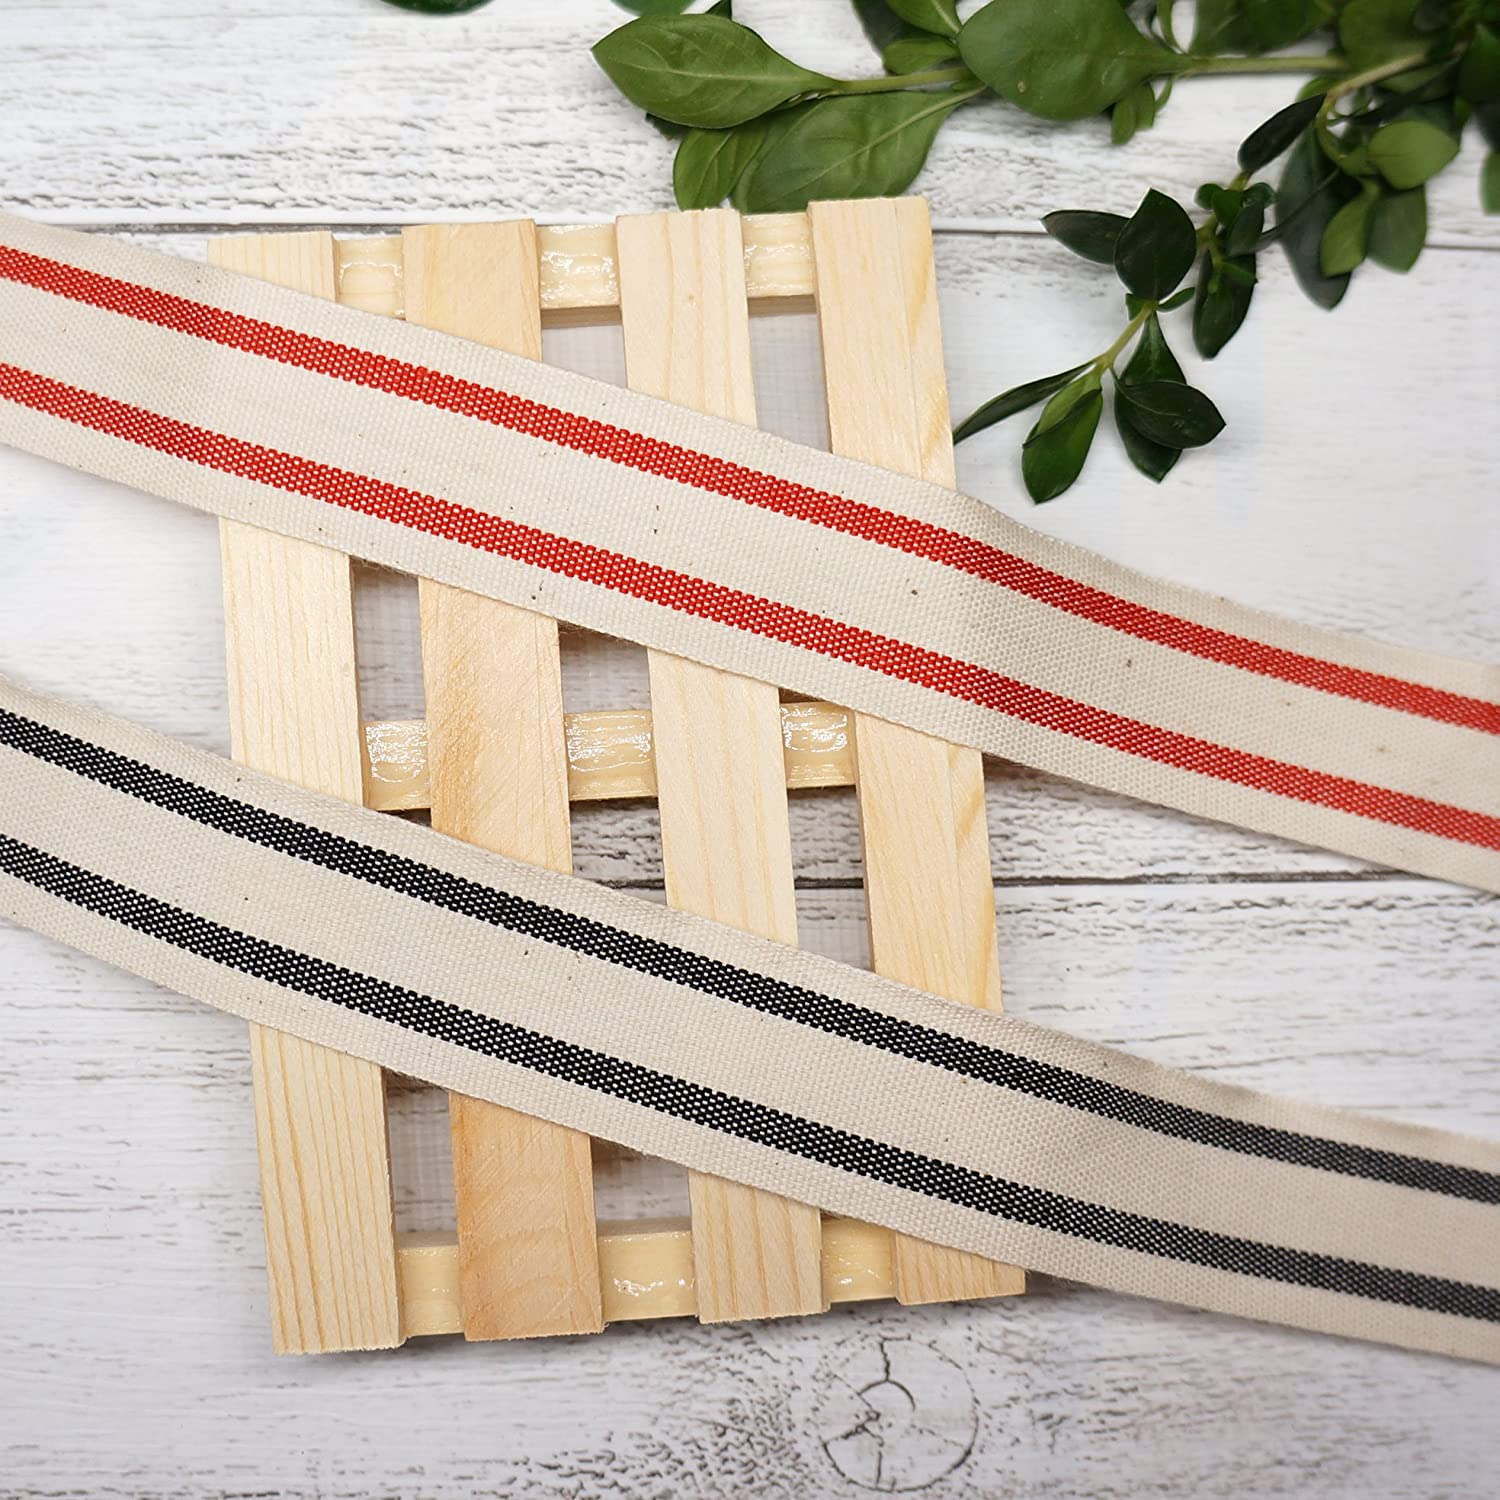 x 10 Yard.Decorative for DIY Crafts and Gift Wrapping Ivory//Red 26mm Natural Cotton Stripes Ribbon 1 inch